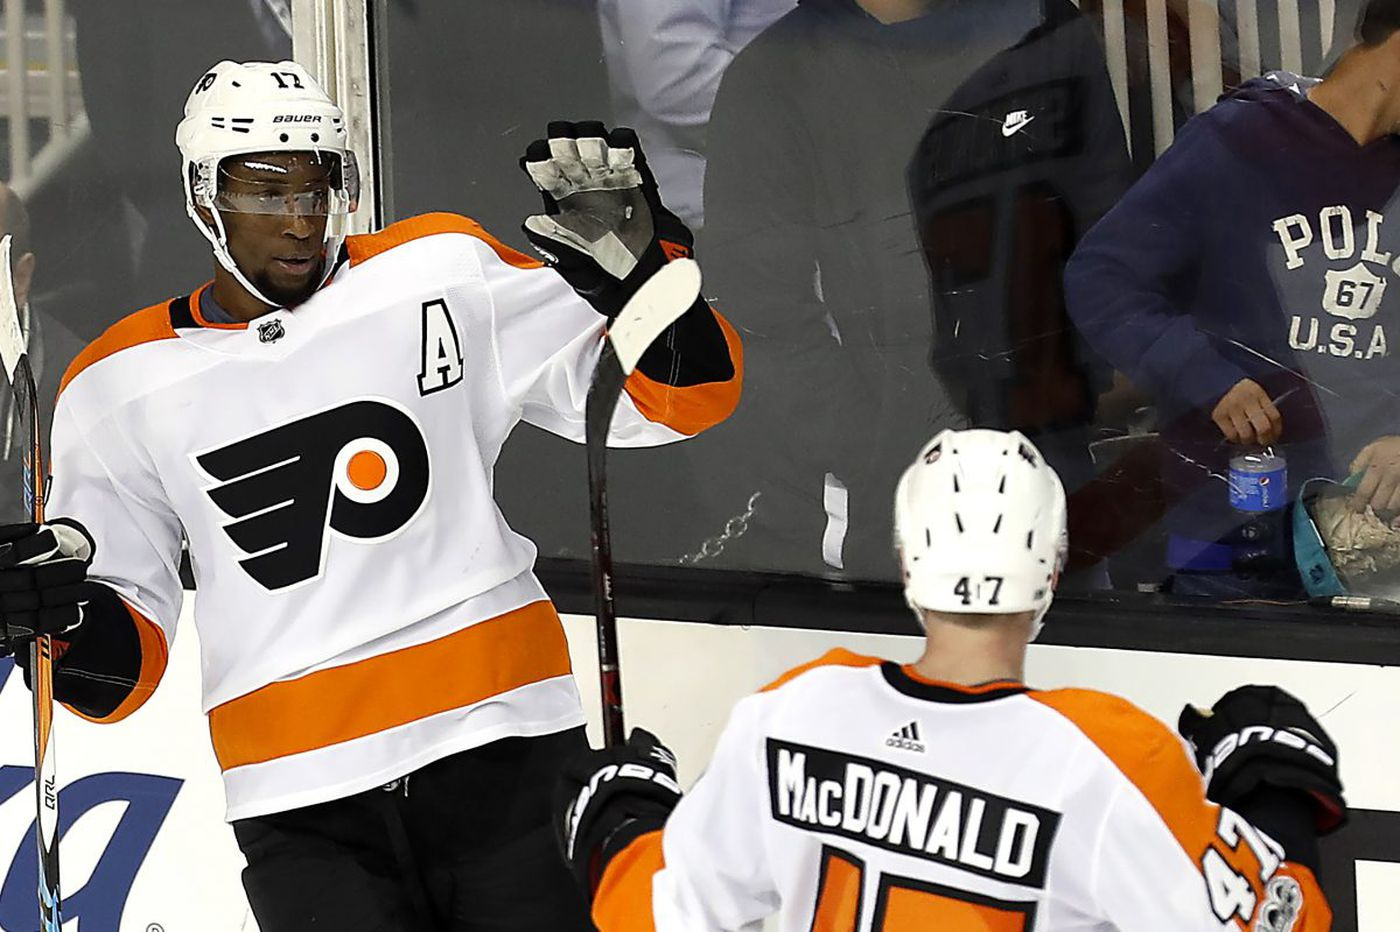 Flyers-Sharks preview: Can Philly rebound from disastrous finish in Pittsburgh?